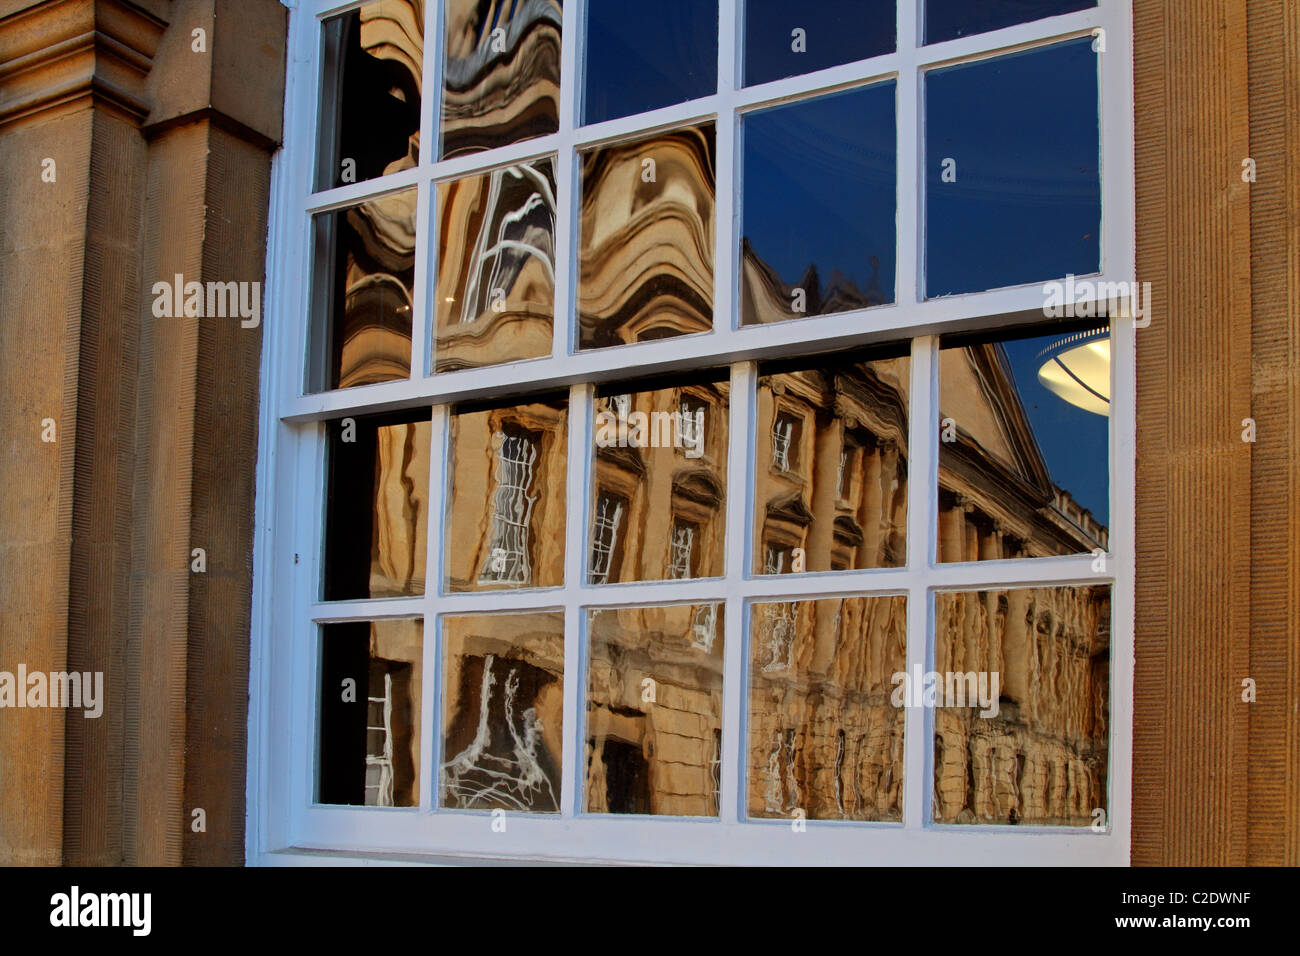 Oxford college reflection - Stock Image